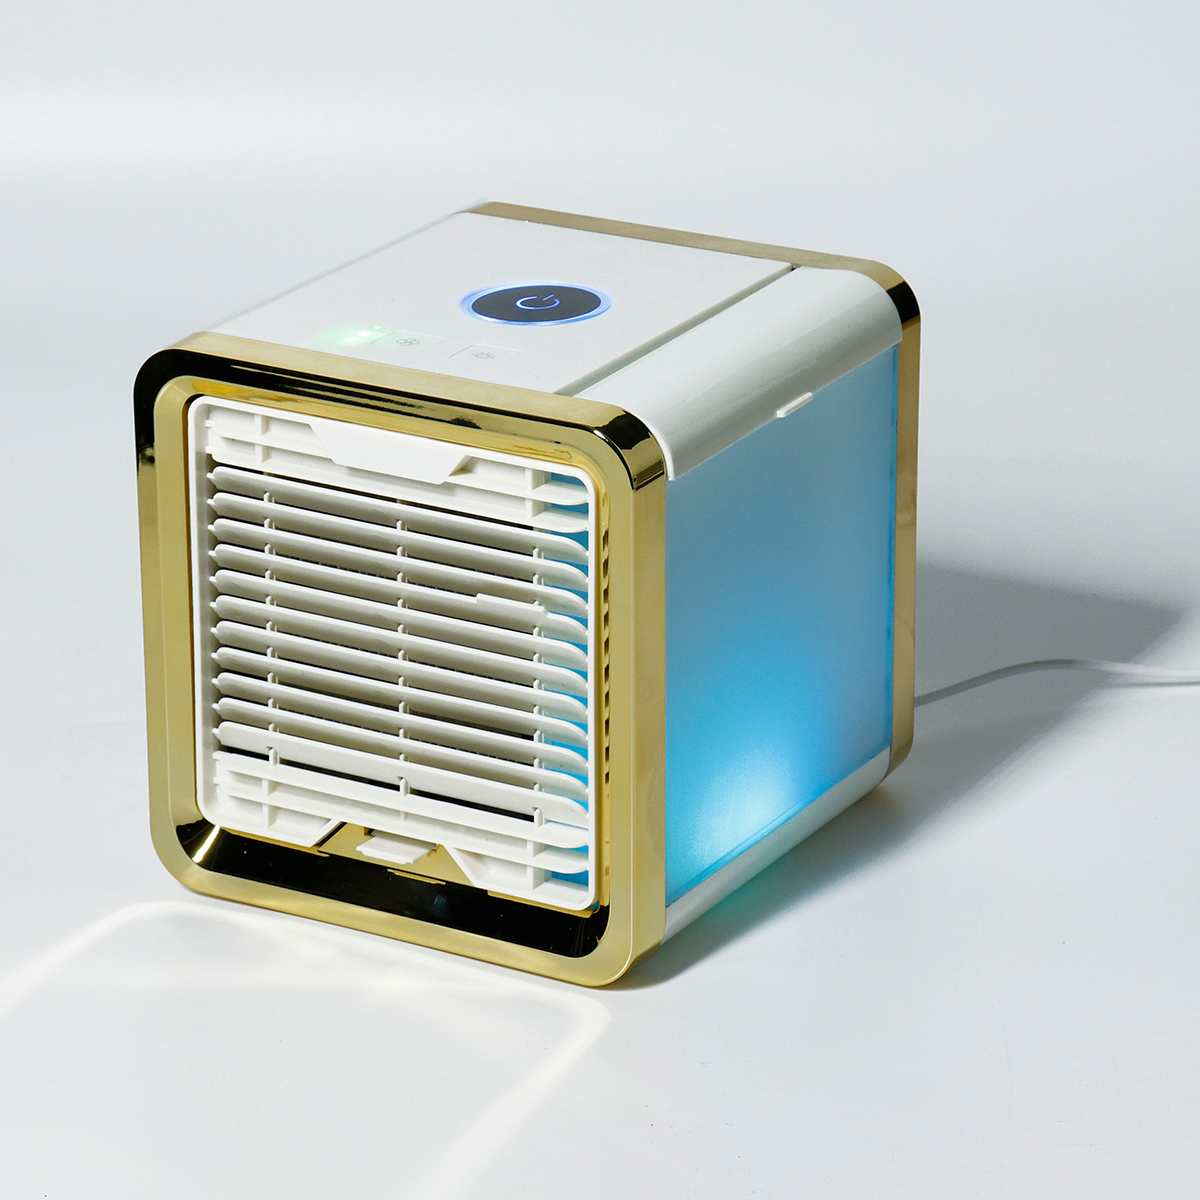 Portable Mini USB Air Conditioner Humidifier Purifier 375ml Capacity Desktop Air Cooling Fan For Office Room 7 Colors LightPortable Mini USB Air Conditioner Humidifier Purifier 375ml Capacity Desktop Air Cooling Fan For Office Room 7 Colors Light